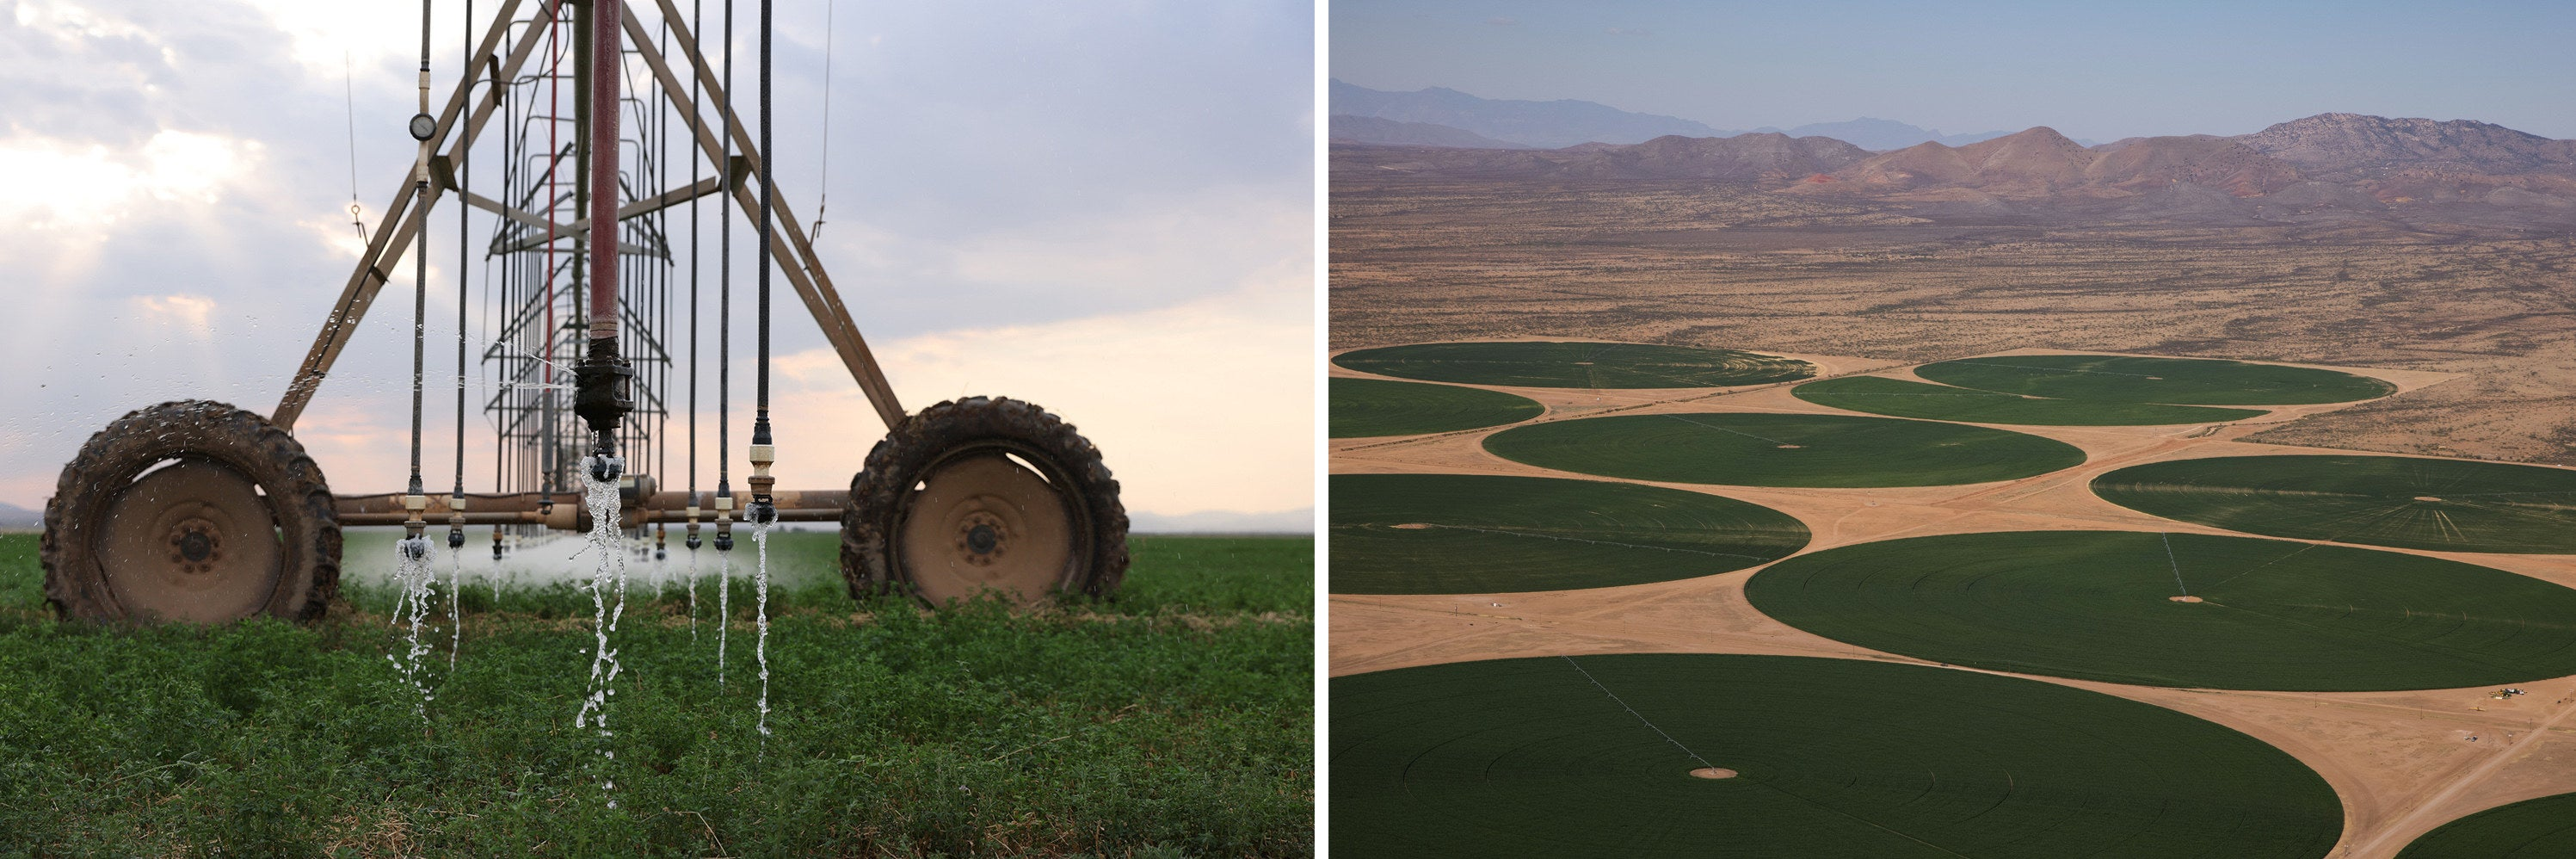 Side-by-side images show an irrigation machine standing in a lush field of vegetation, and an overhead view of crops